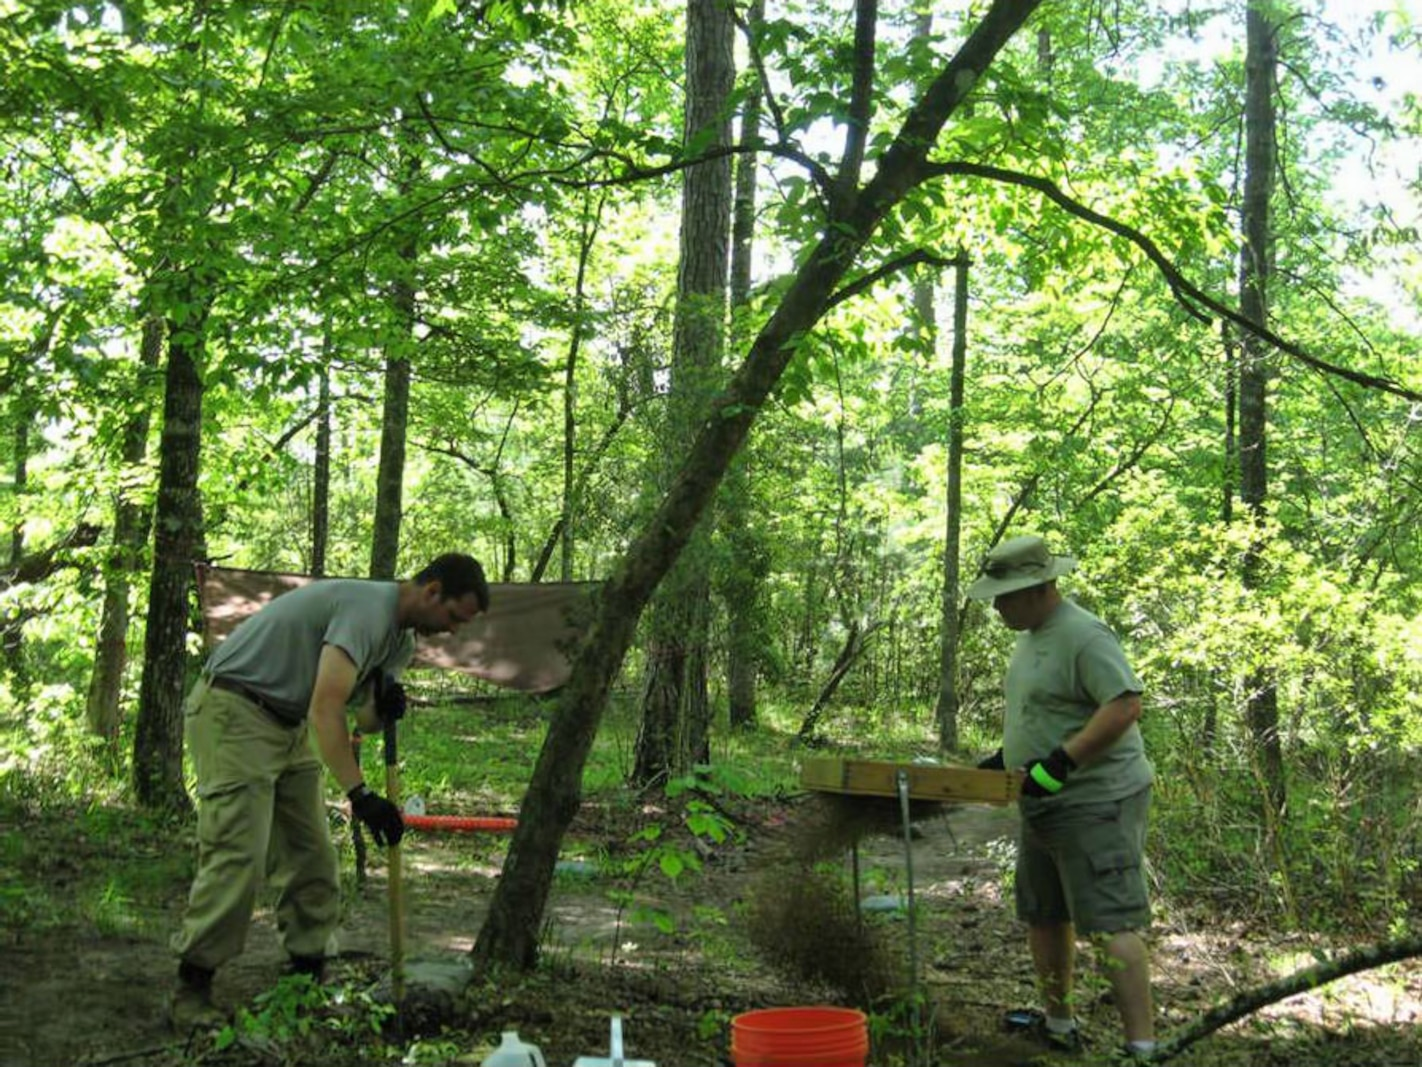 Phase I archaeological survey methodology, shovel testing, aboard Marine Corps Base Camp Lejeune, N.C.